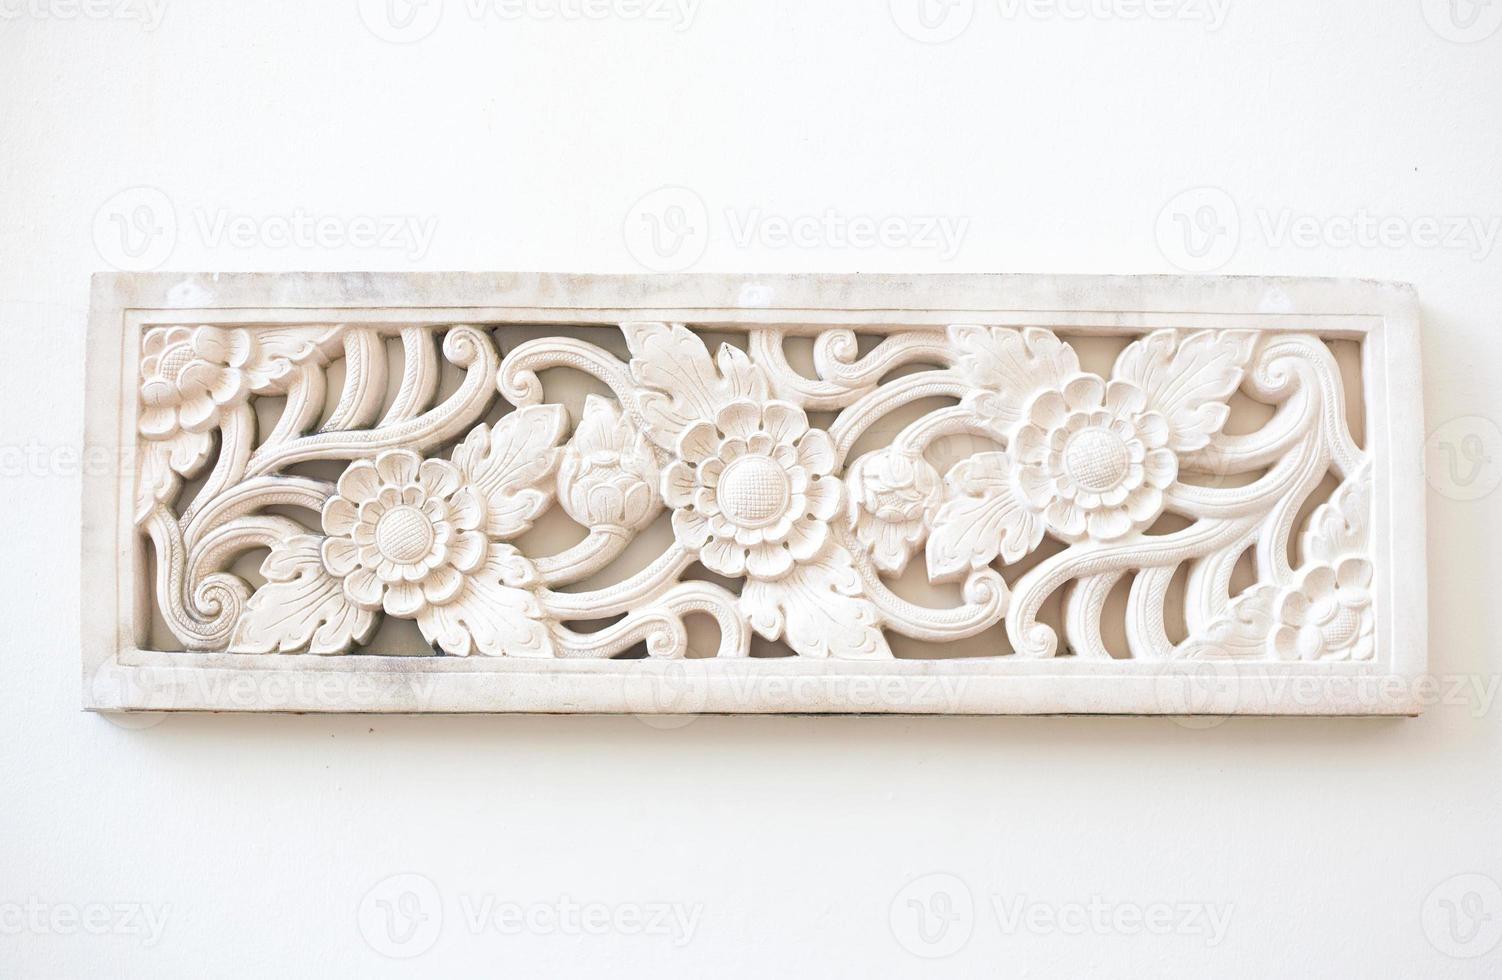 White thai art stucco wall in Thailand photo